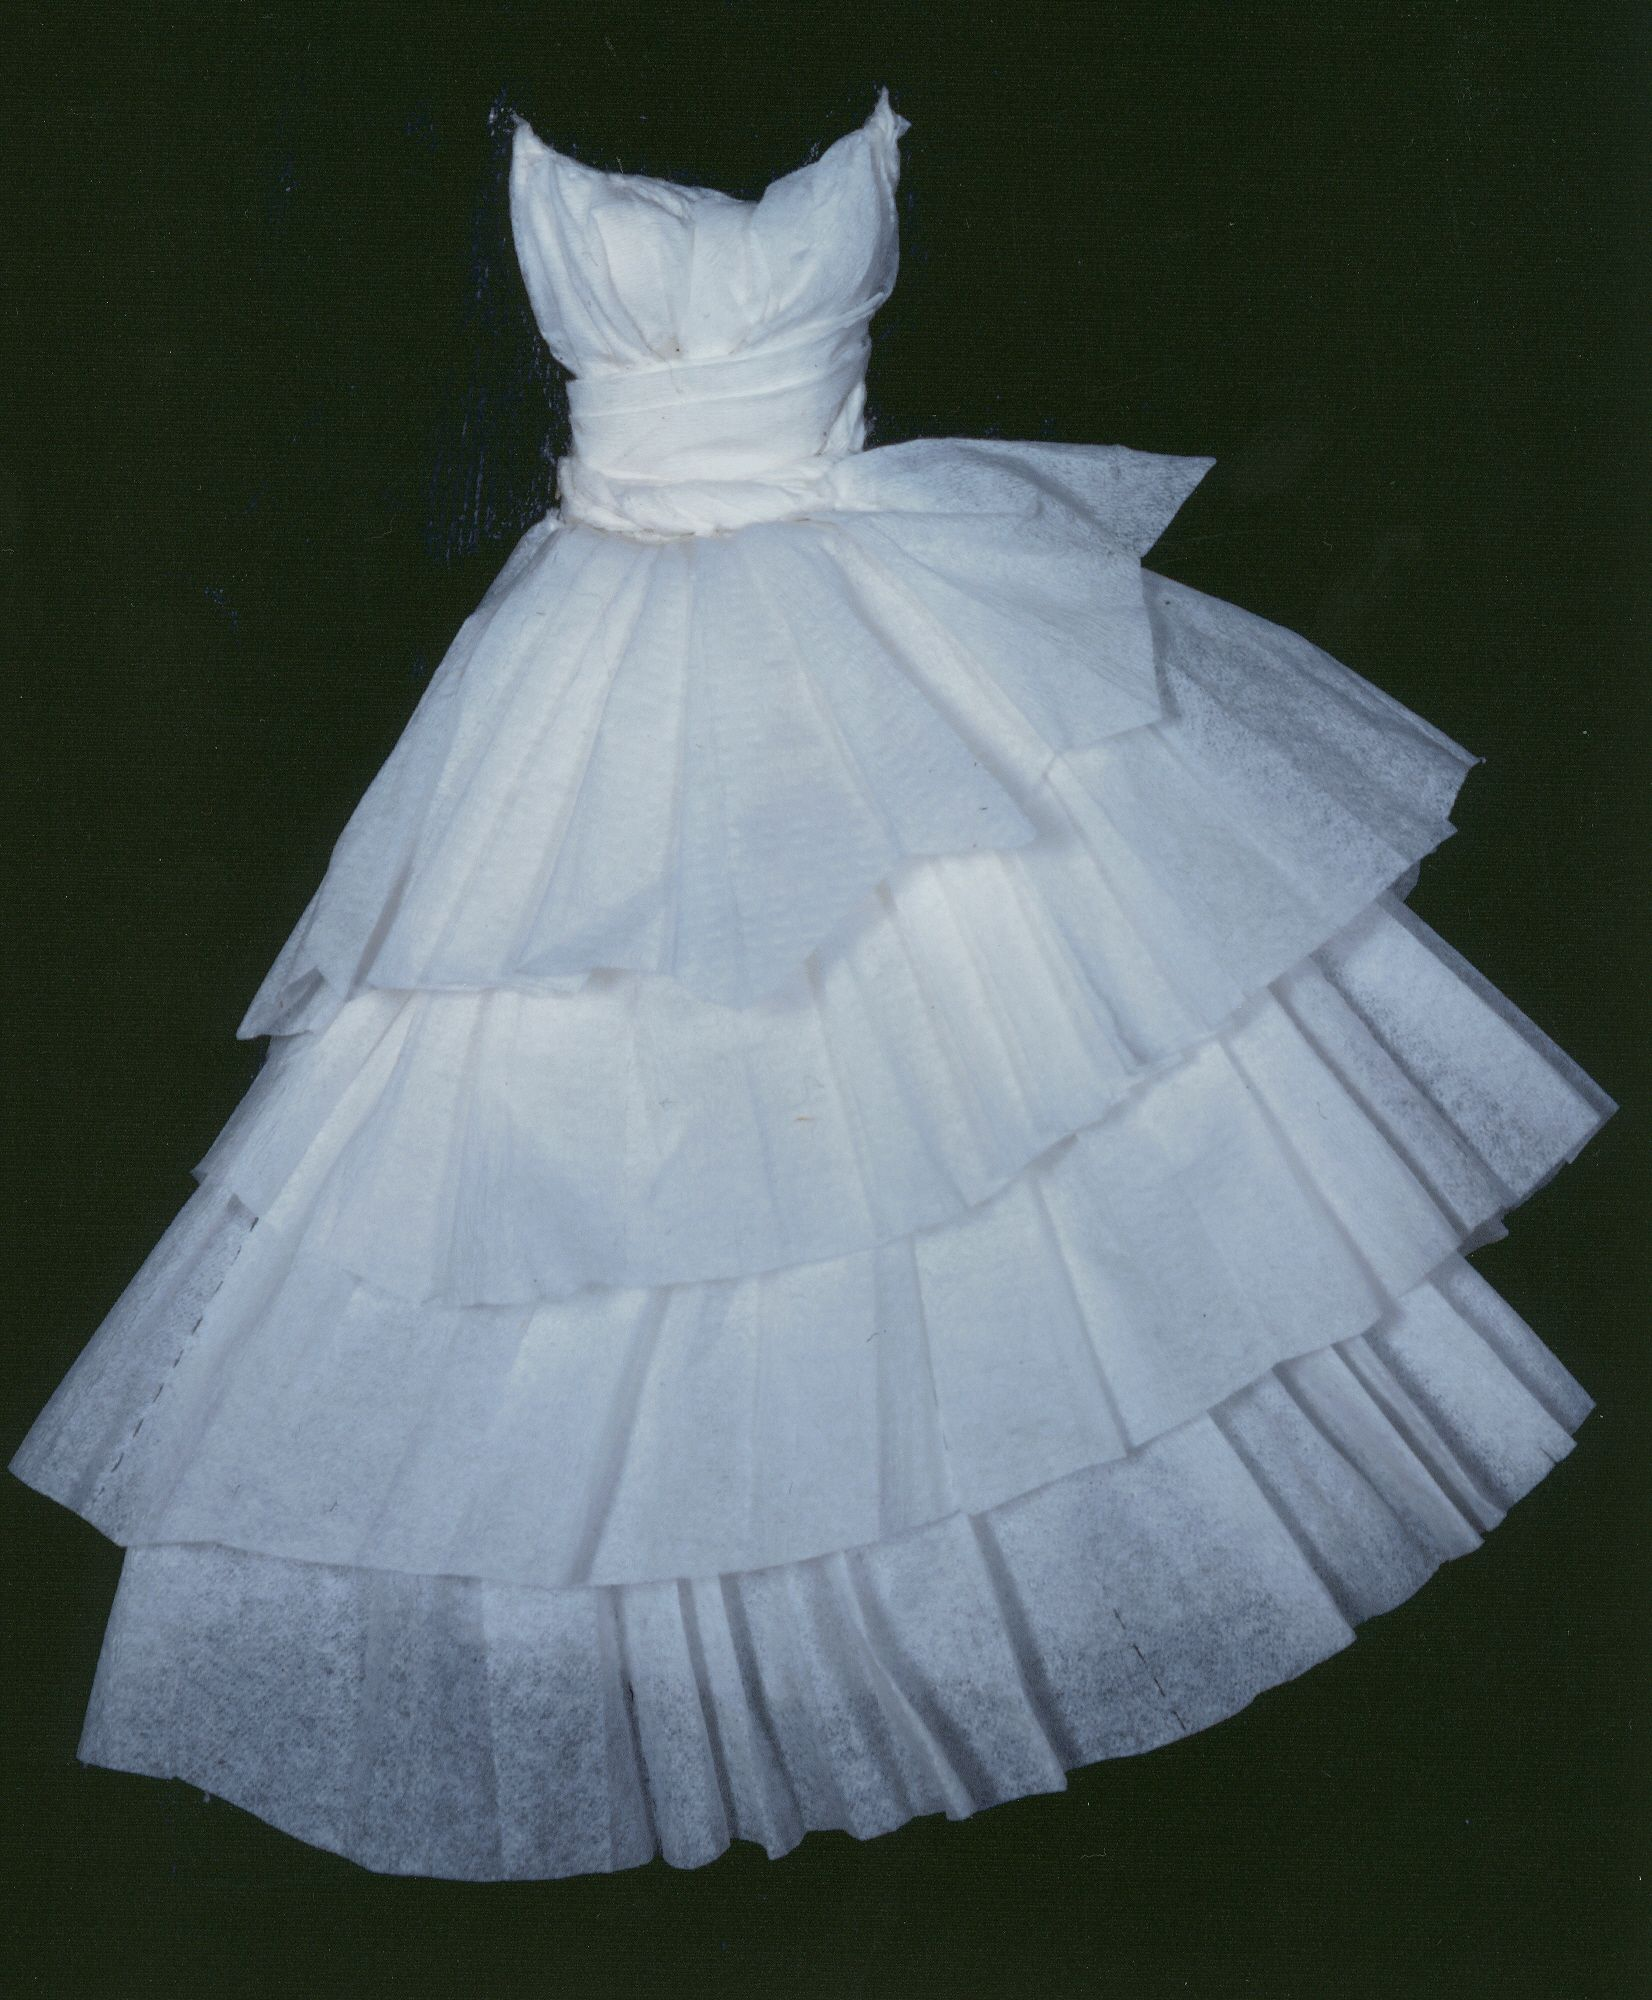 Paper Wedding Dress | ... paper dresses that she made. The series is ...